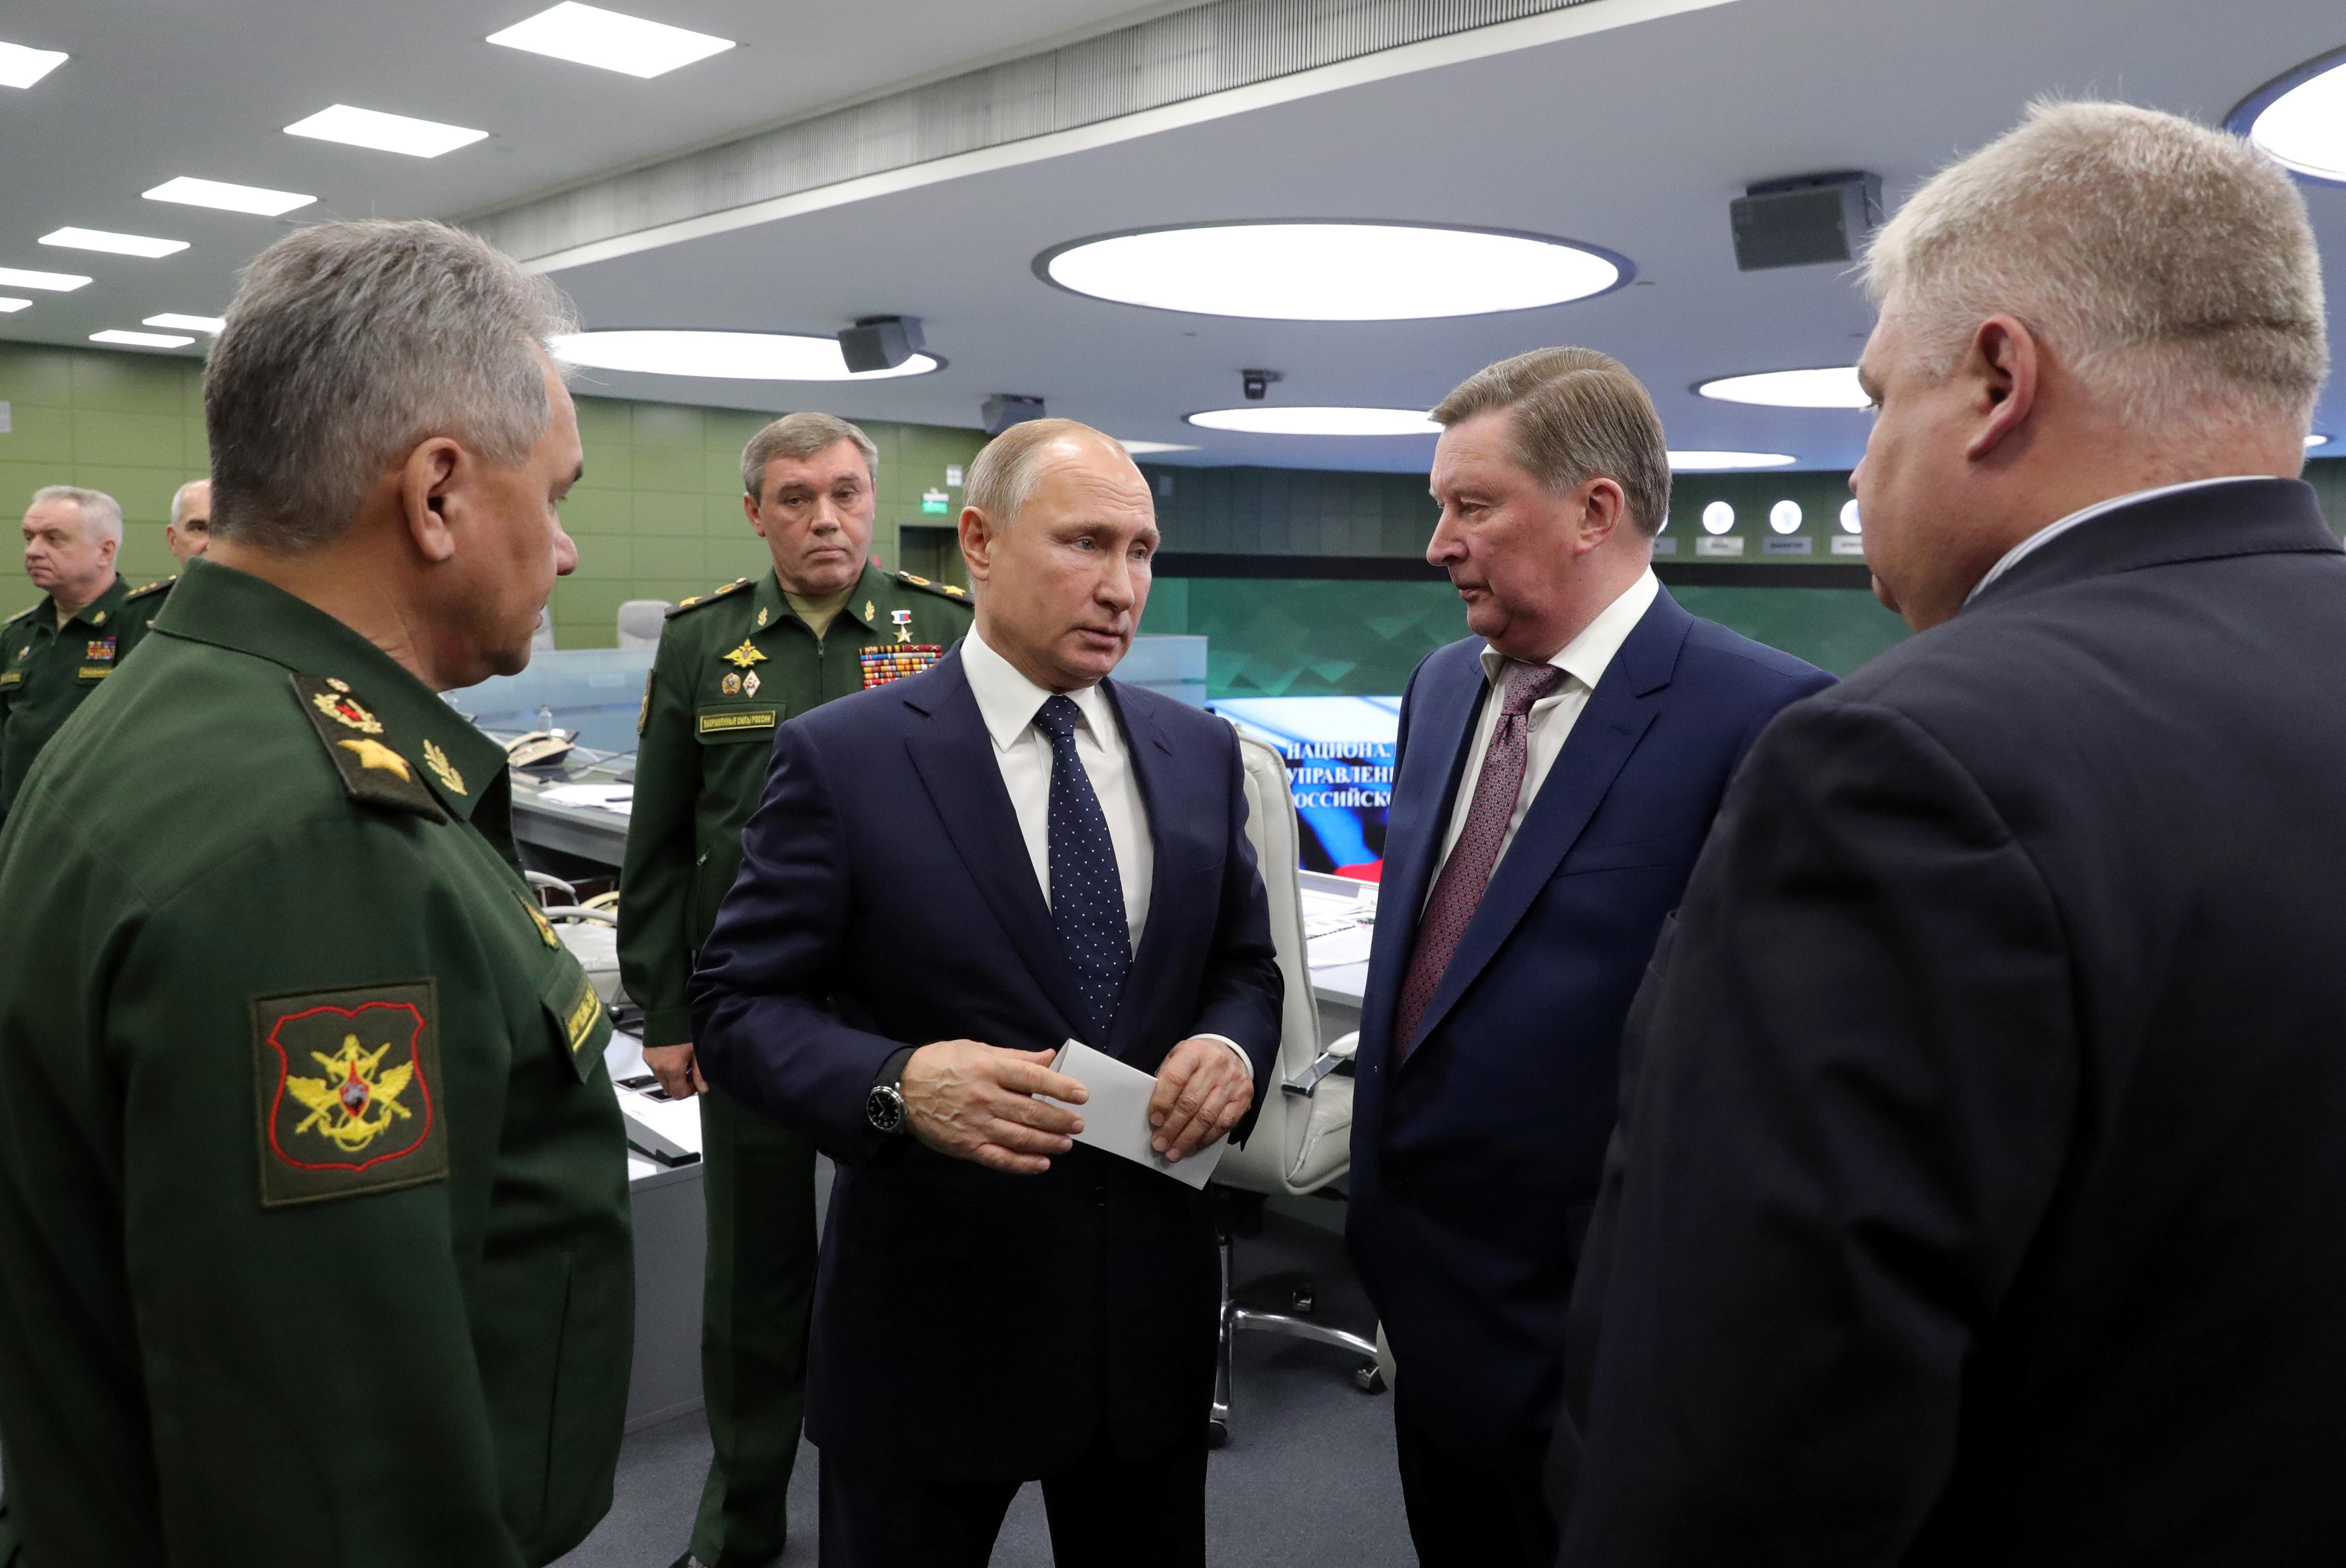 Putin says Russia is ready to deploy new hypersonic nuclear missile